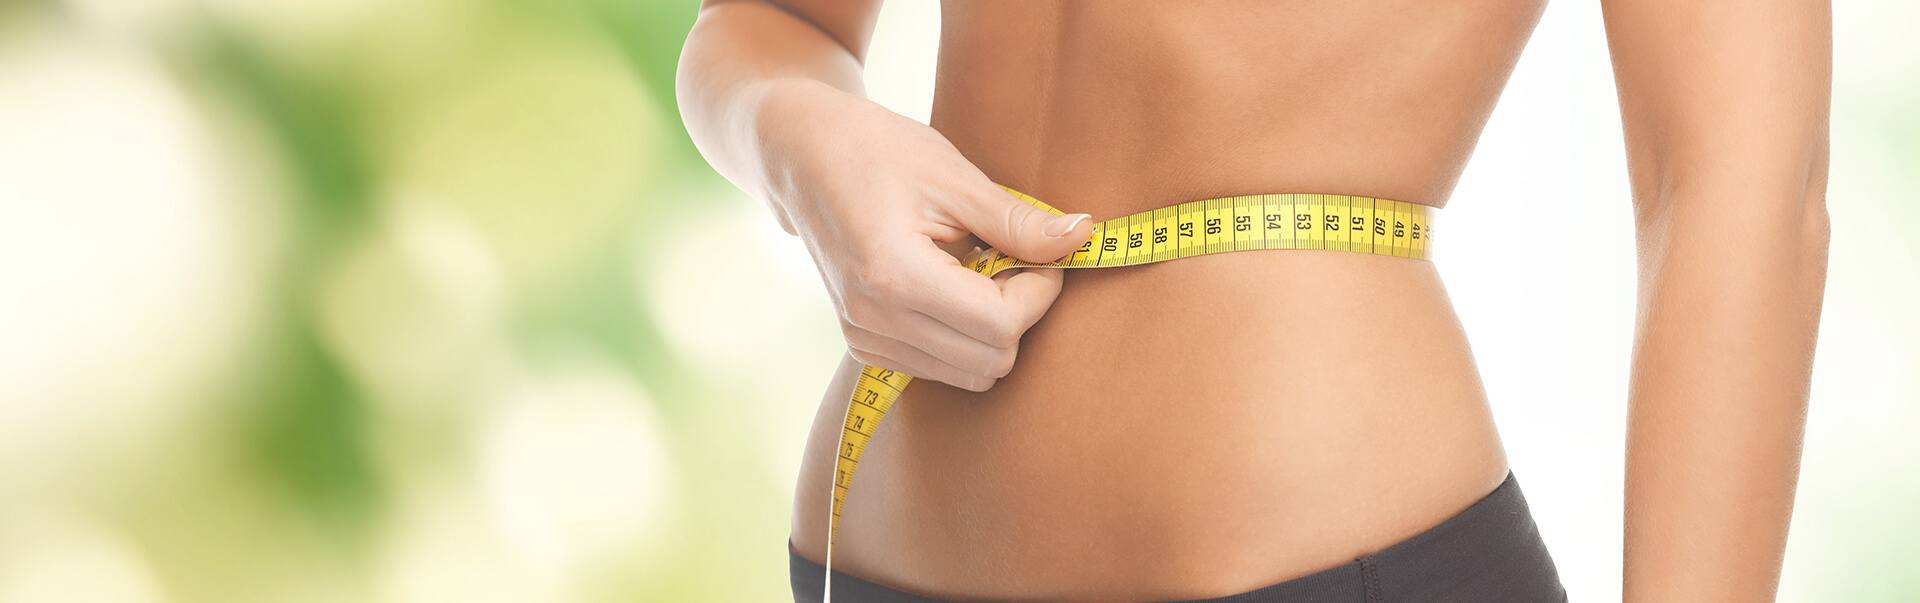 Personal Training and Weight Loss Banner